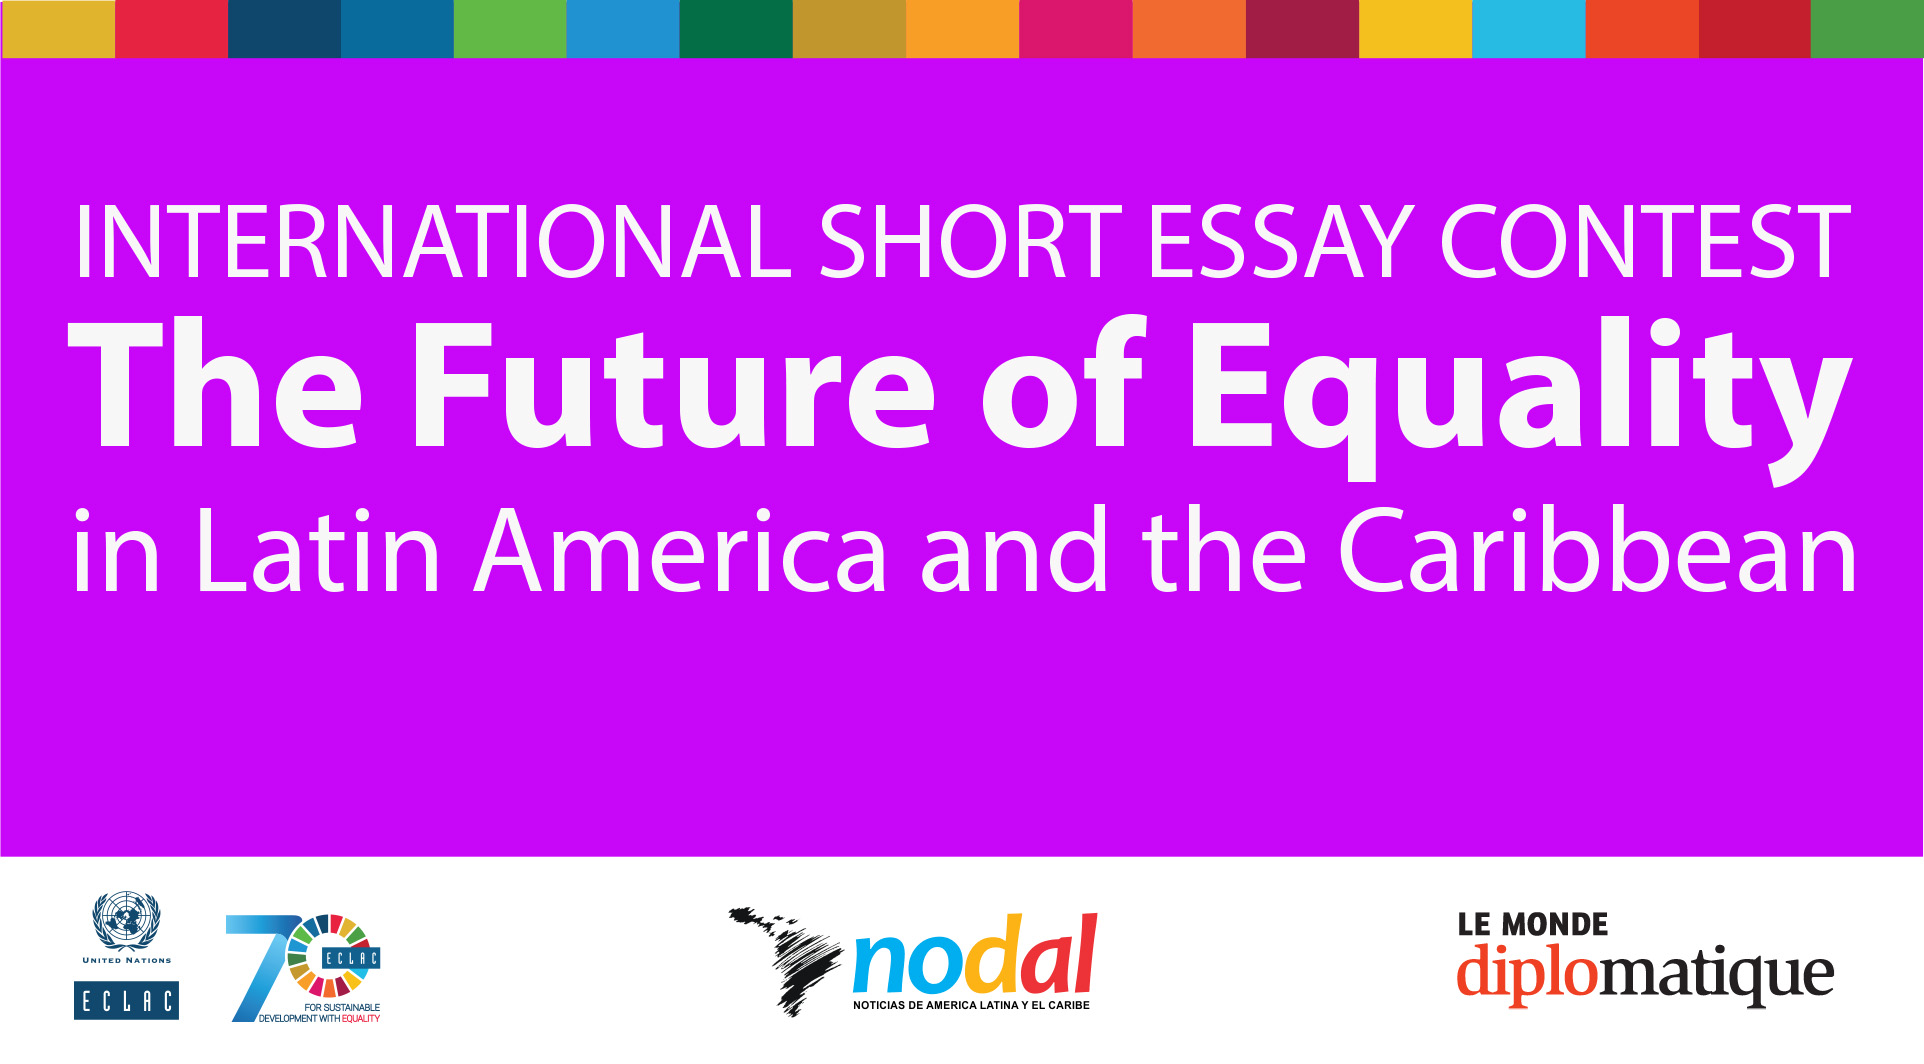 Apa Format For Essay Paper International Short Essay Contest The Future Of Equality In Latin America  And The Caribbean Banner High School Admission Essay Examples also Essay Mahatma Gandhi English Eclac Announces Winners Of International Short Essay Contest About  Cause And Effect Essay Topics For High School